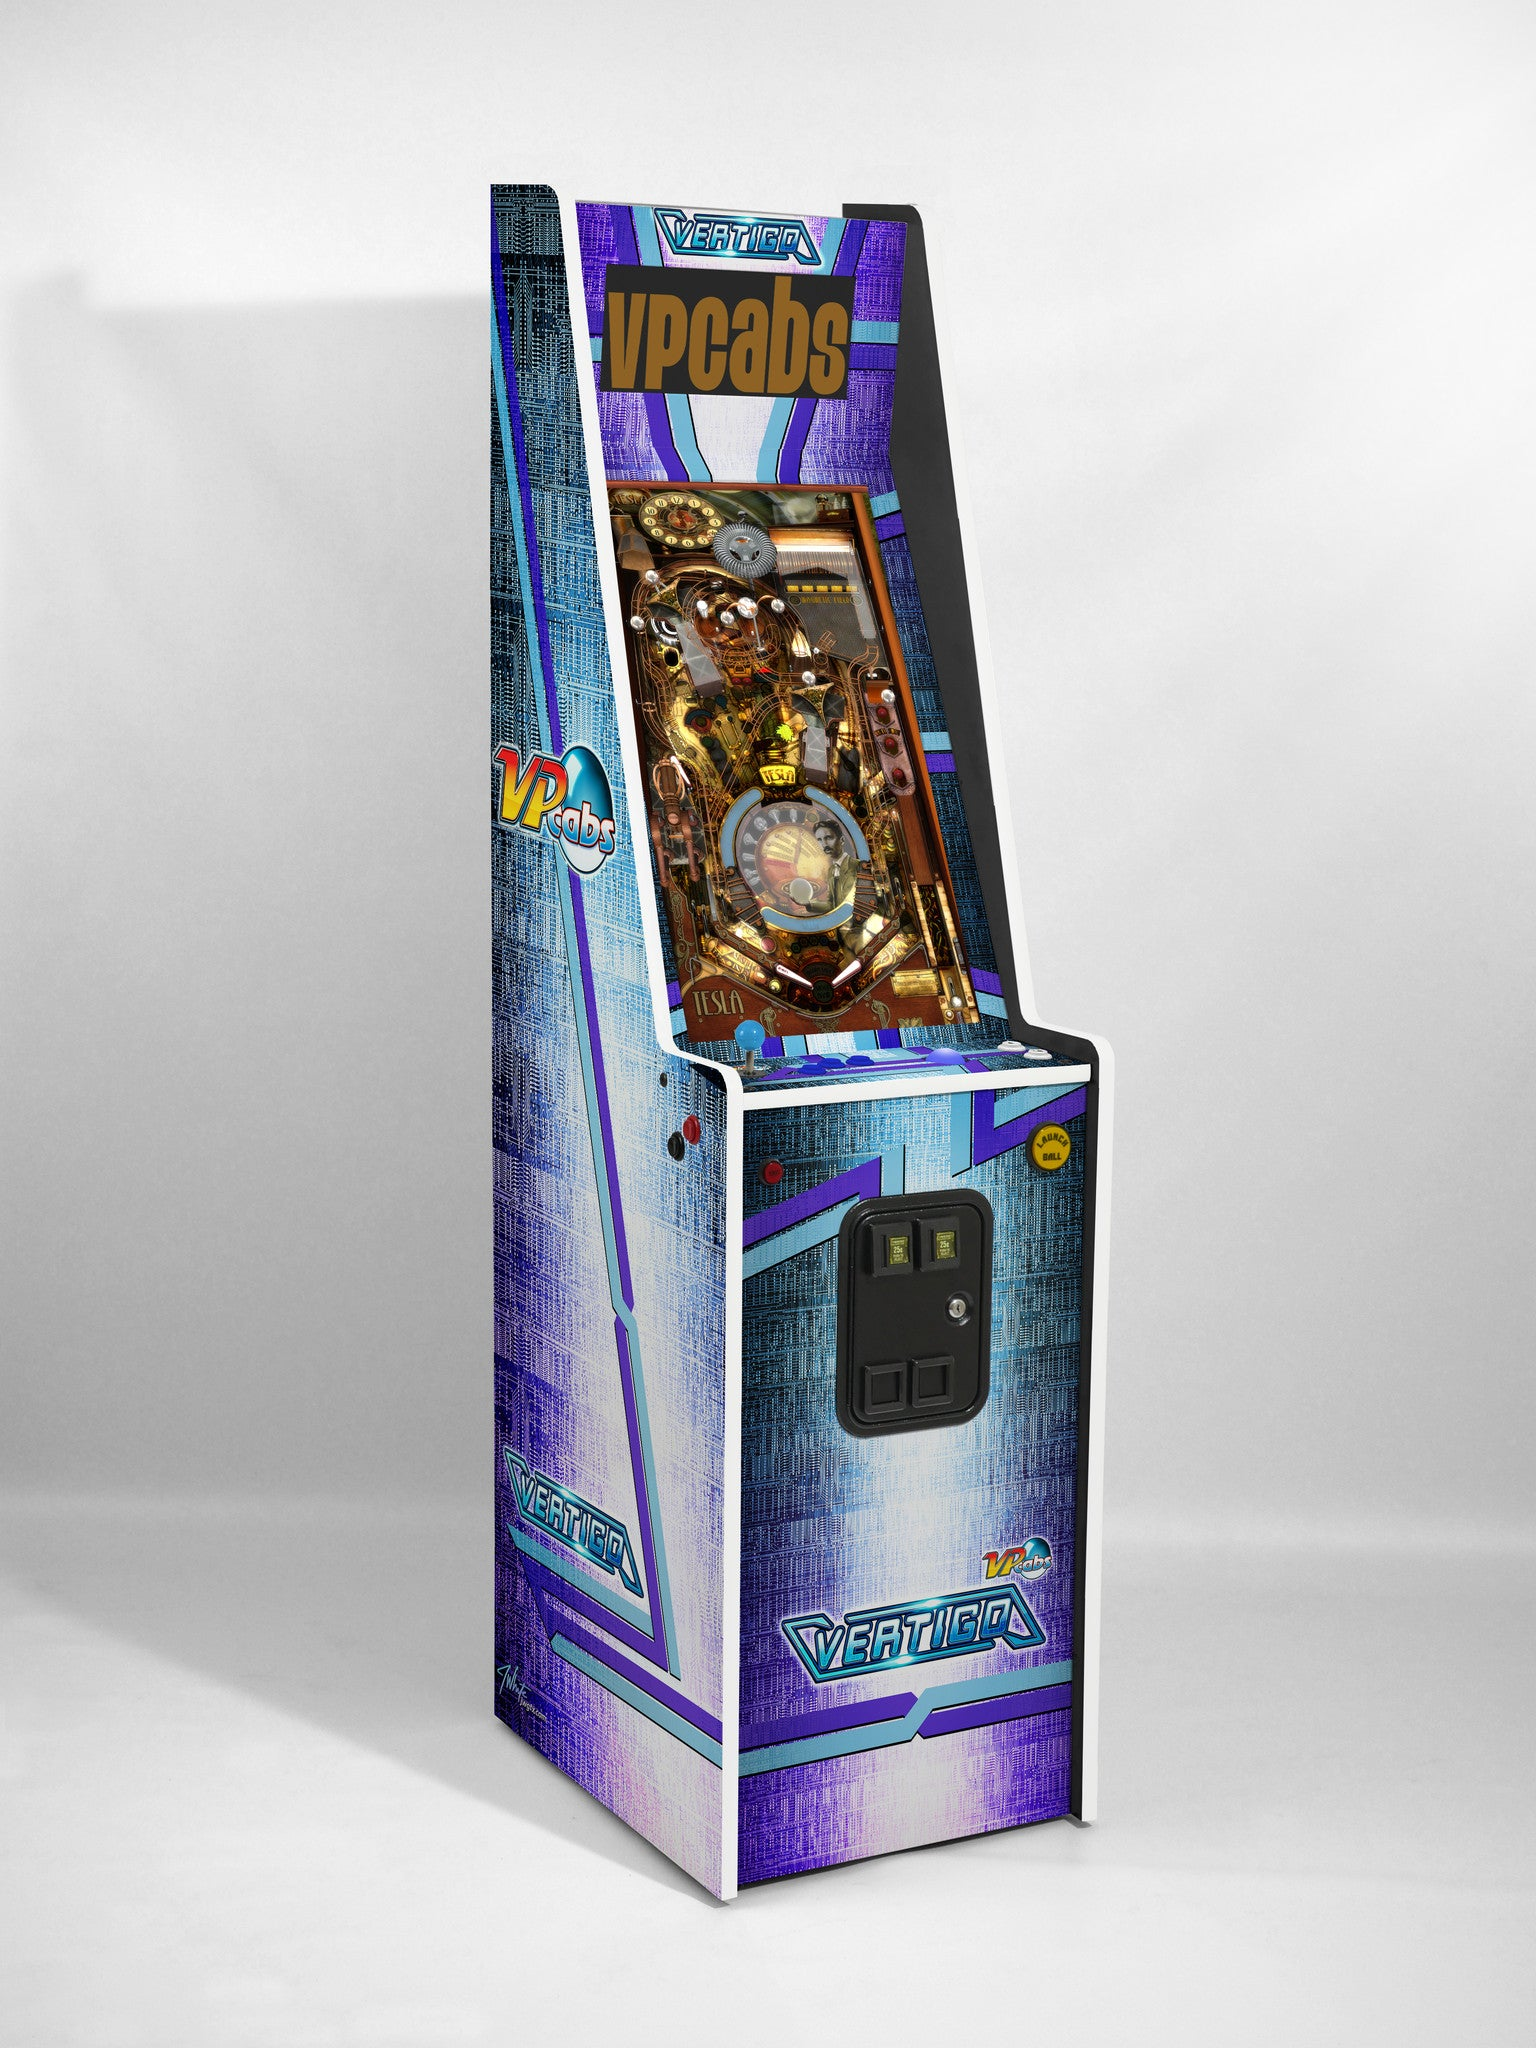 VERTIGO Pinball and Arcade Machine All-in-One - VP Cabs, LLC